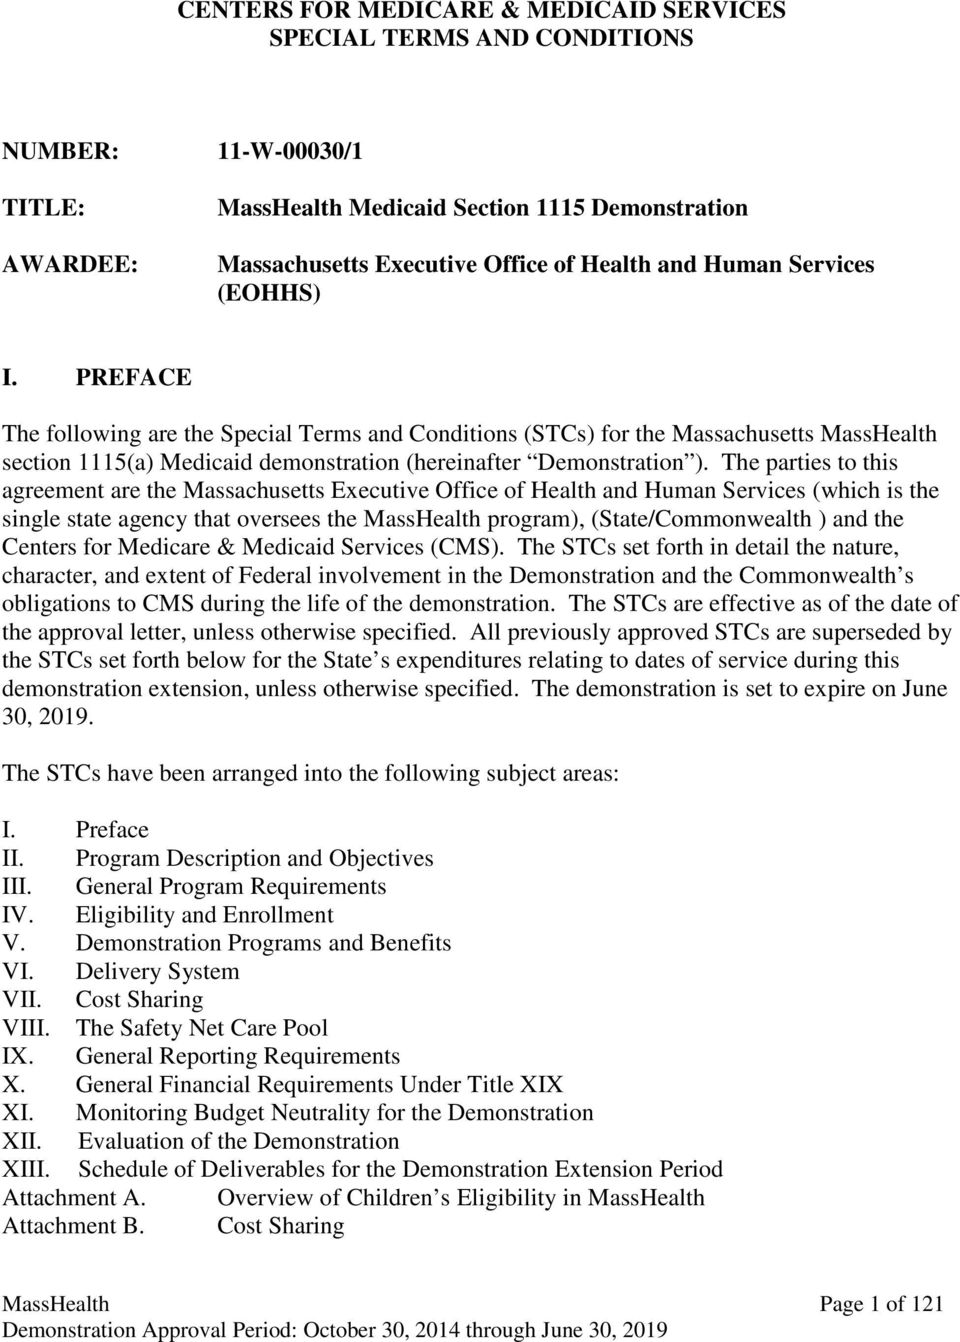 The parties to this agreement are the Massachusetts Executive Office of Health and Human Services (which is the single state agency that oversees the MassHealth program), (State/Commonwealth ) and